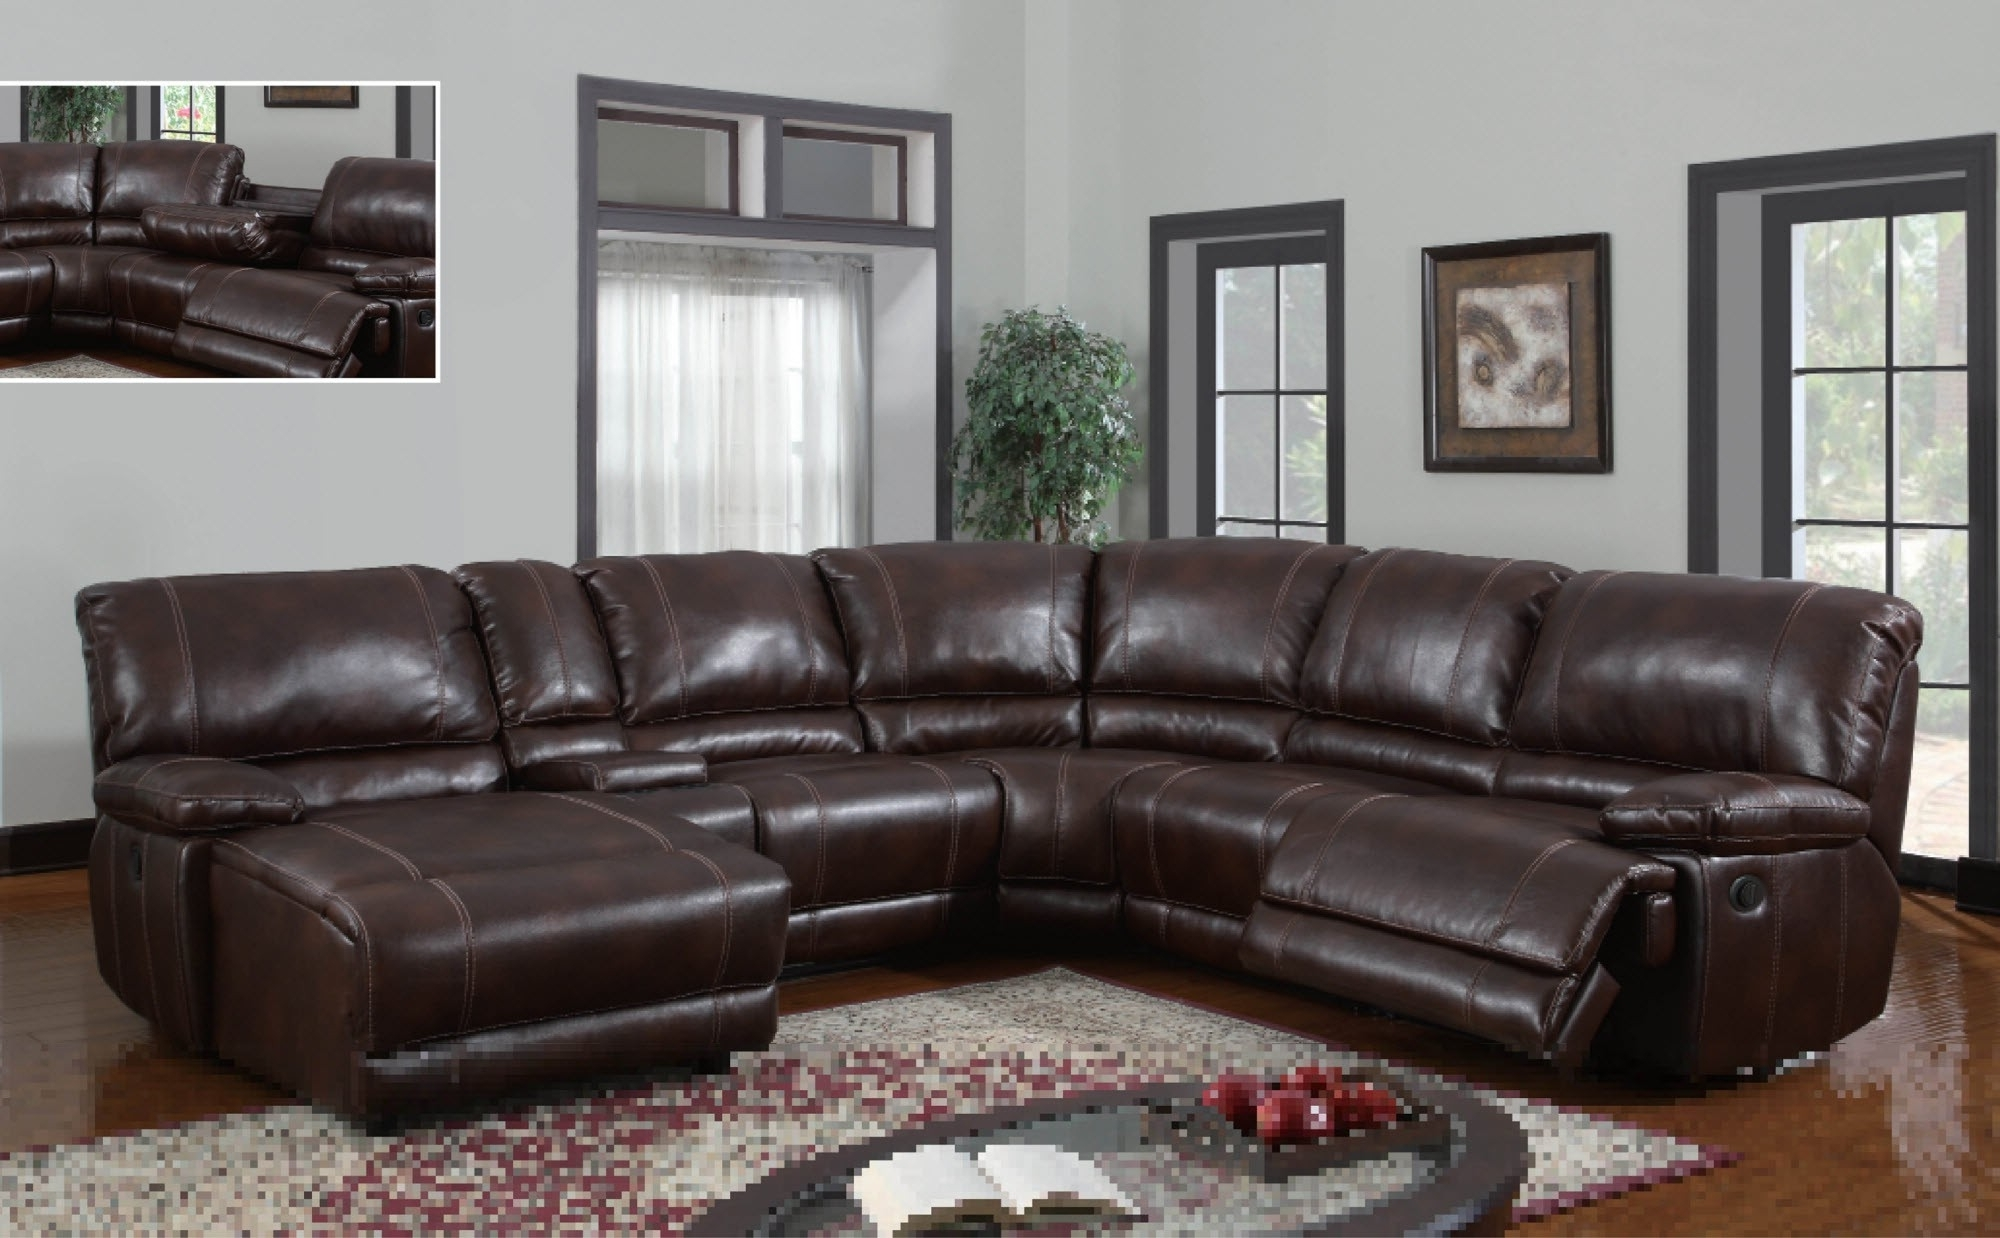 Preferred Lovely Sectional Sofa Phoenix – Buildsimplehome Intended For Phoenix Sectional Sofas (View 9 of 15)